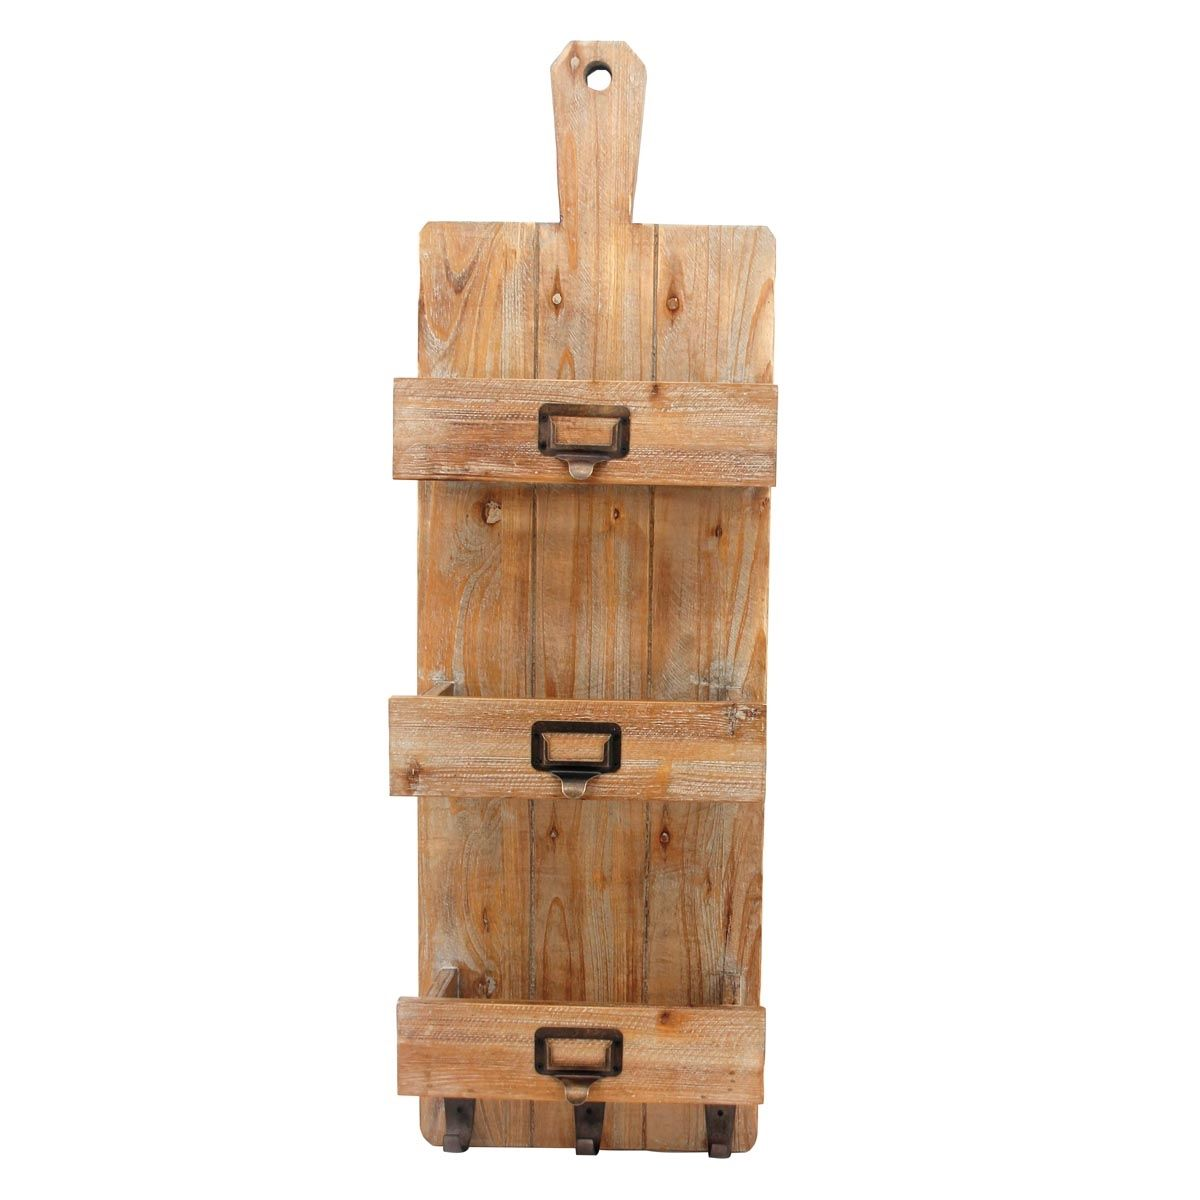 Foreside Home & Garden - 3 Bottle Wine Rack with Hooks | Farmhouse ...